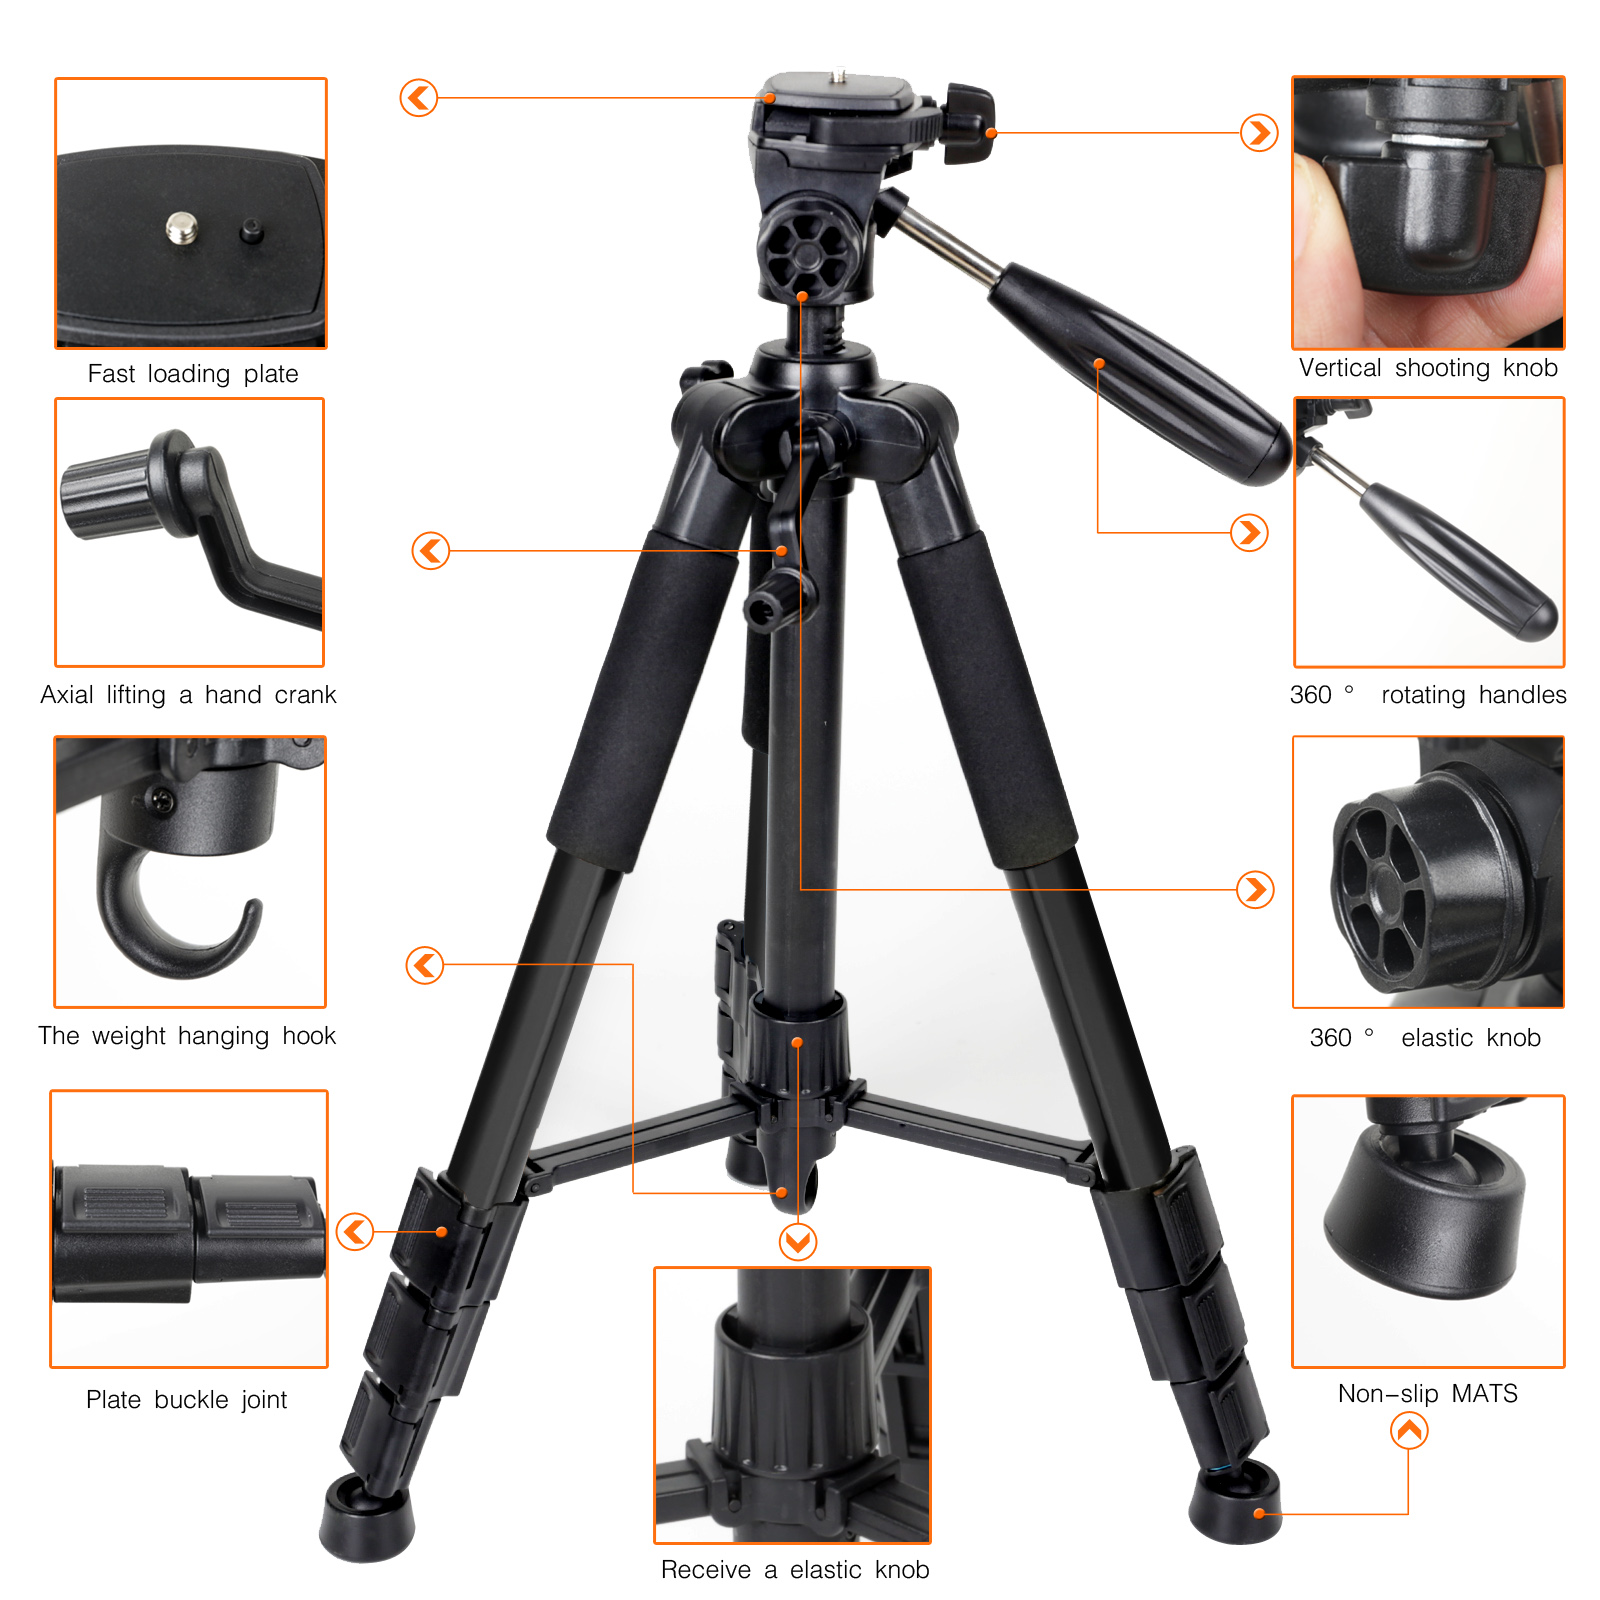 ФОТО Pro Universal Adjustable Aluminium Camera Tripod with Pan Head for DSLR Digital Camera Camcorder Black